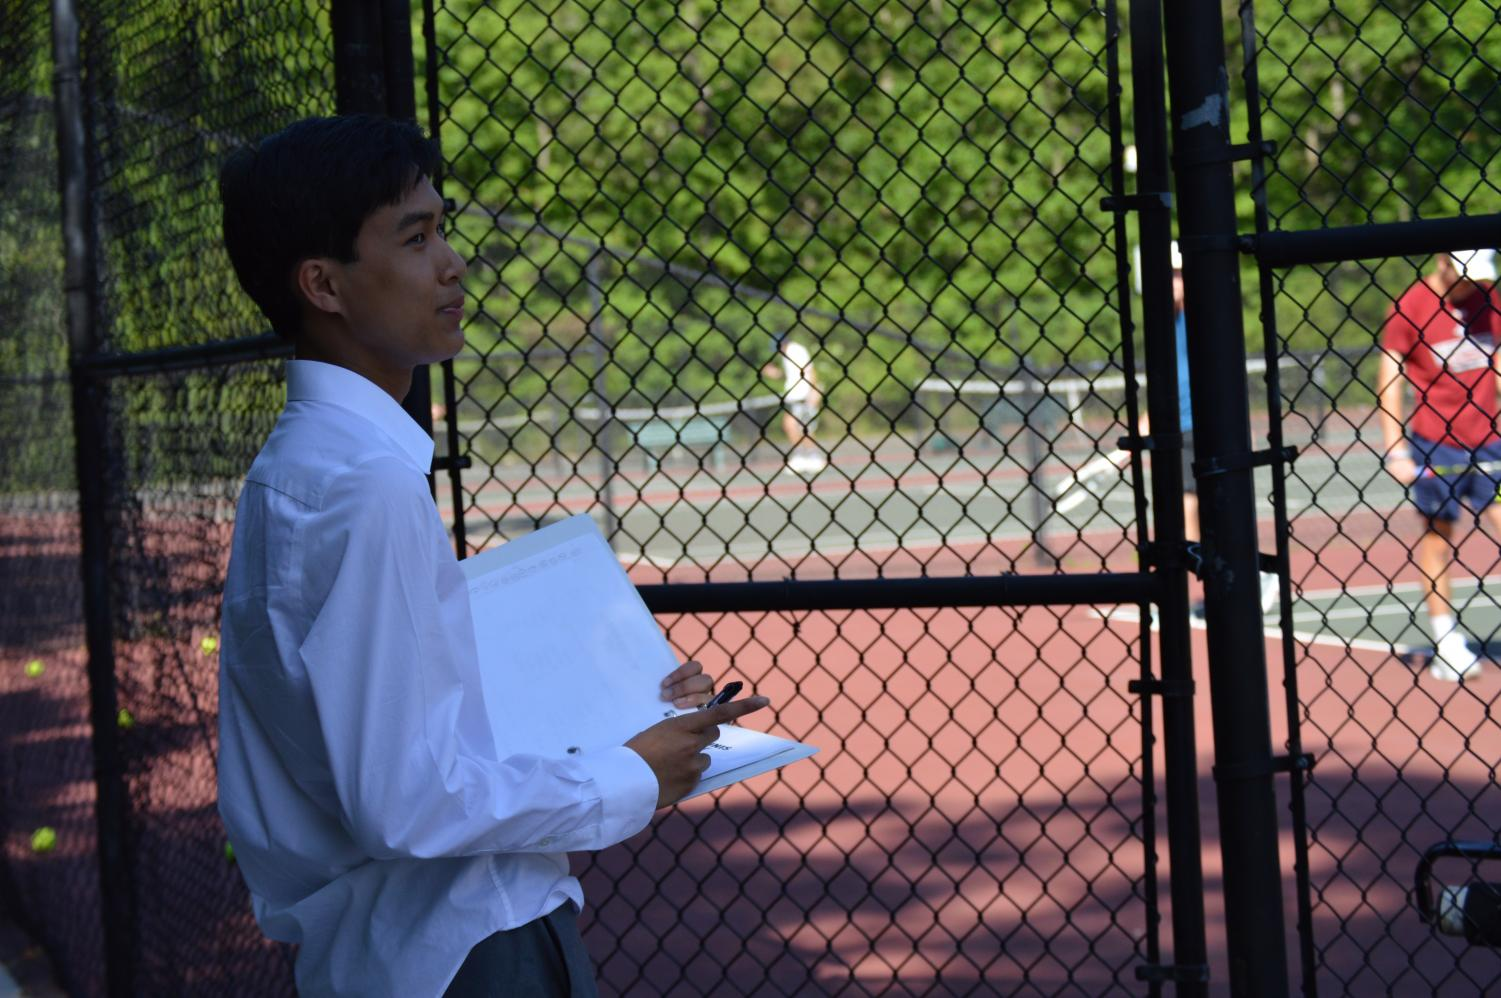 Andrew Nguyen watches over the tennis team as they perform.